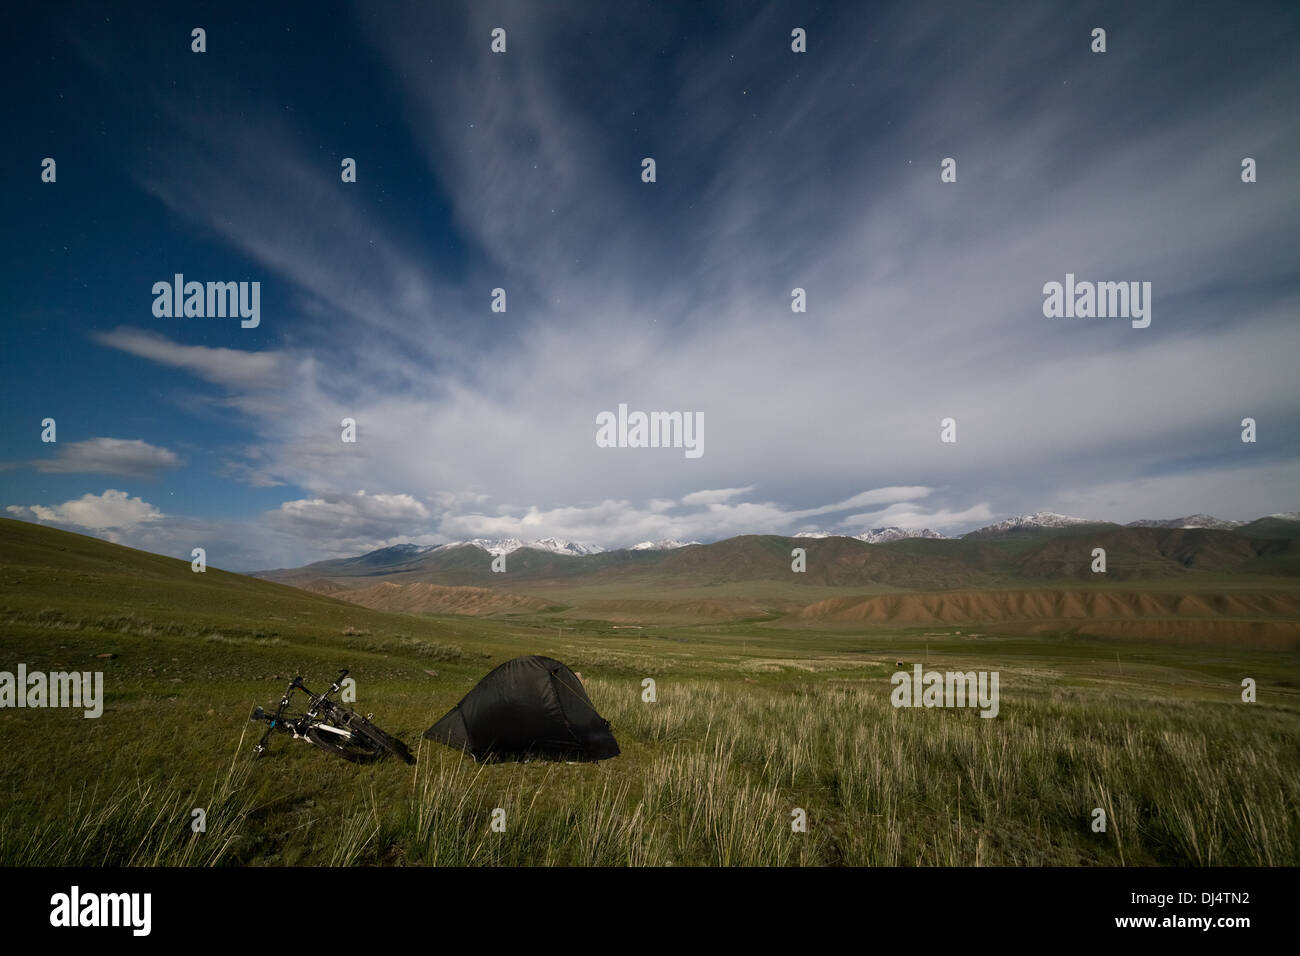 Tent in mountains under star sky - Stock Image